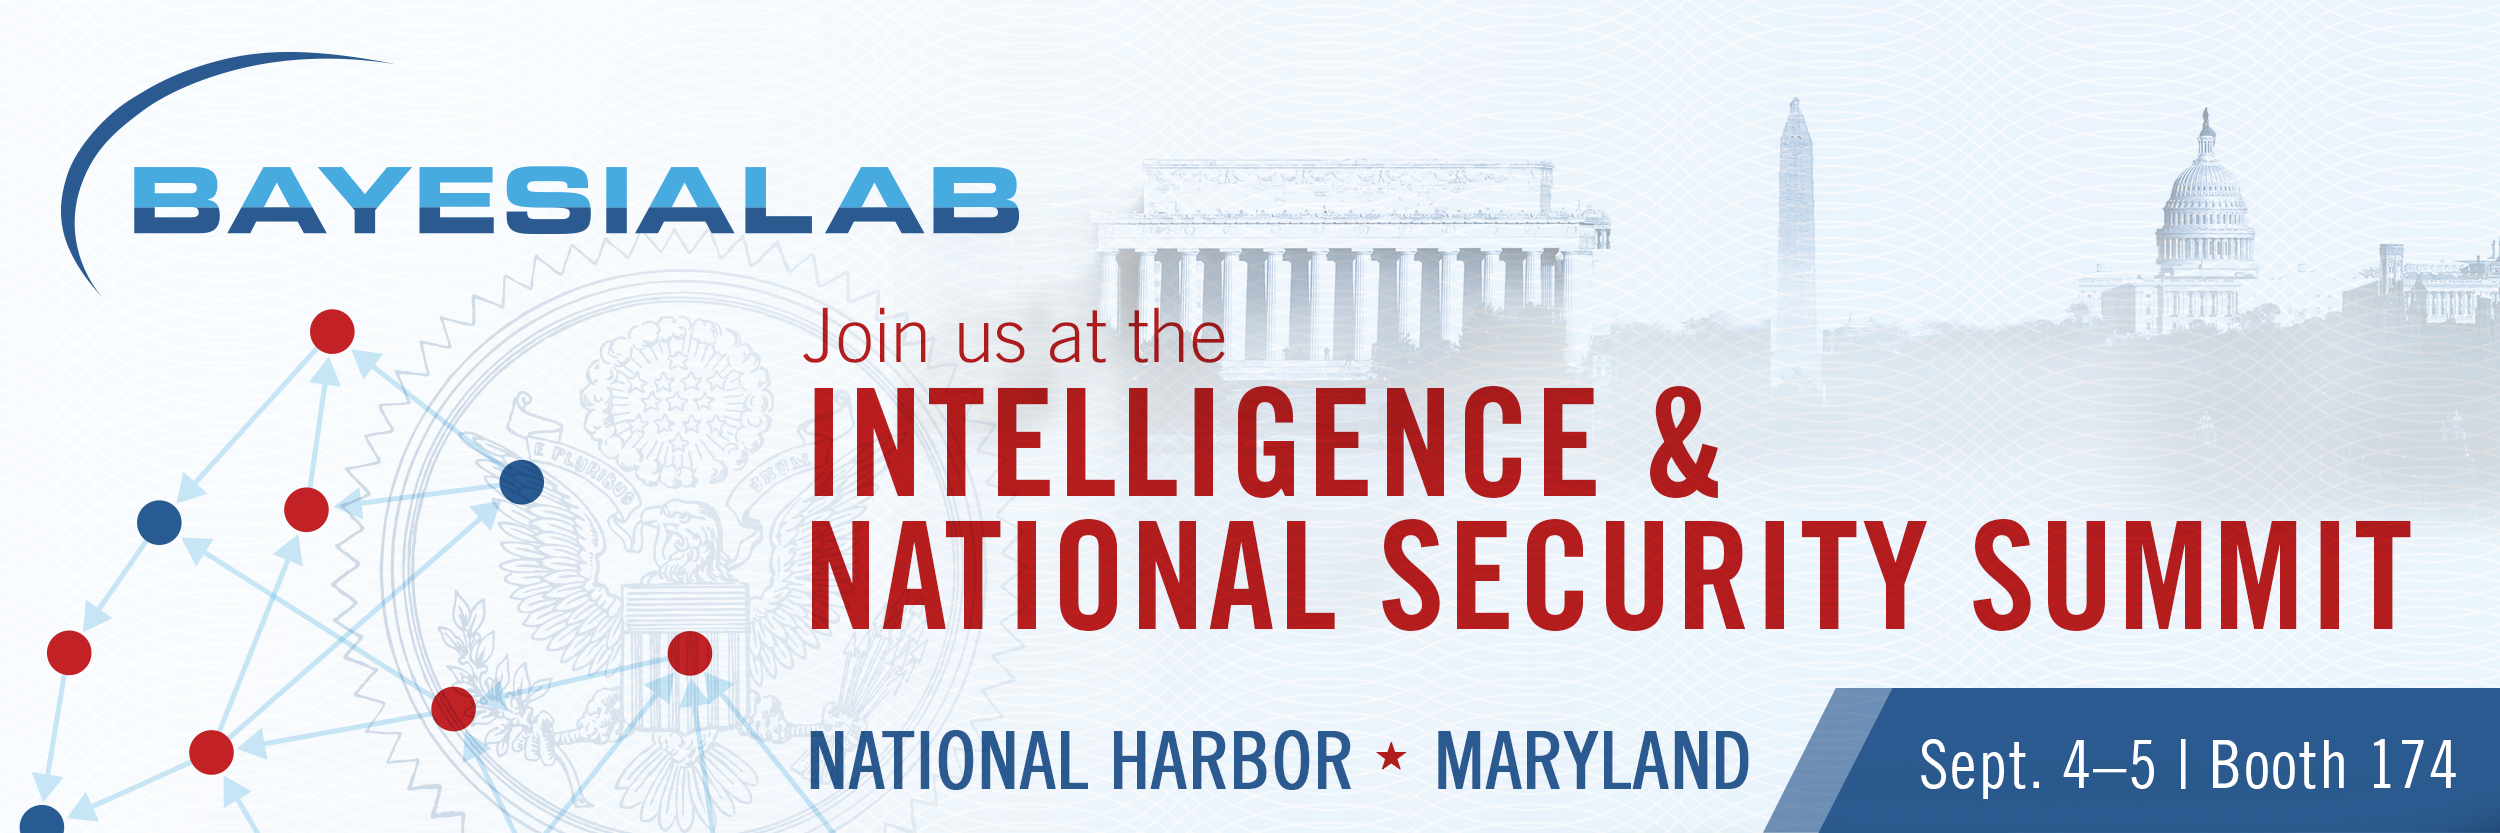 BayesiaLab at the Intelligence & National Security Summit